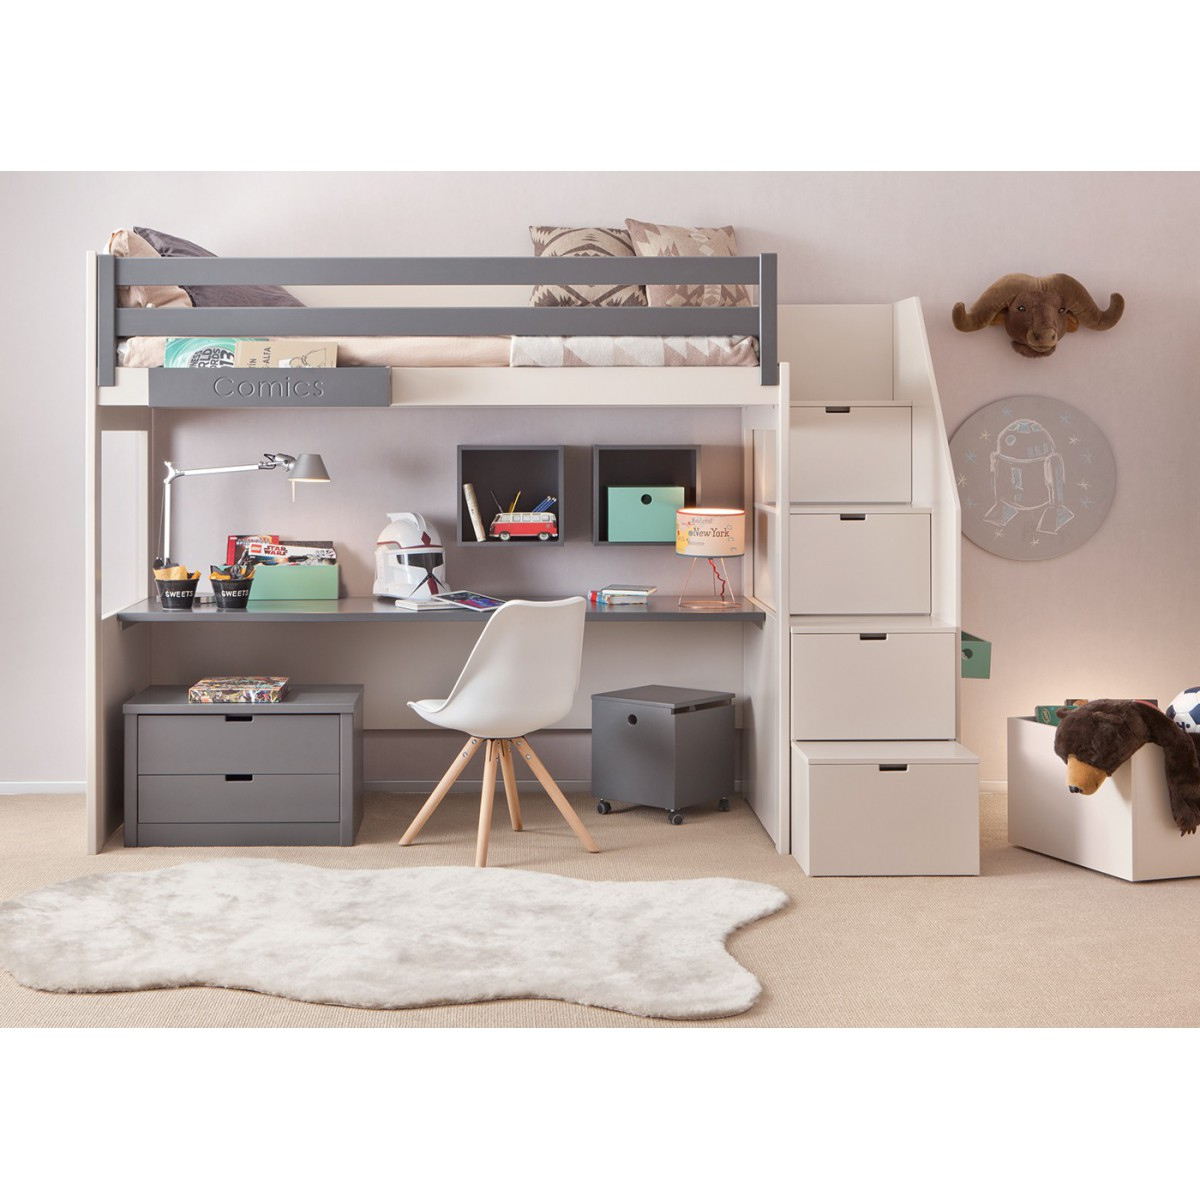 Chambre design sp cial ados juniors sign - Lit superpose avec bureau integre ...